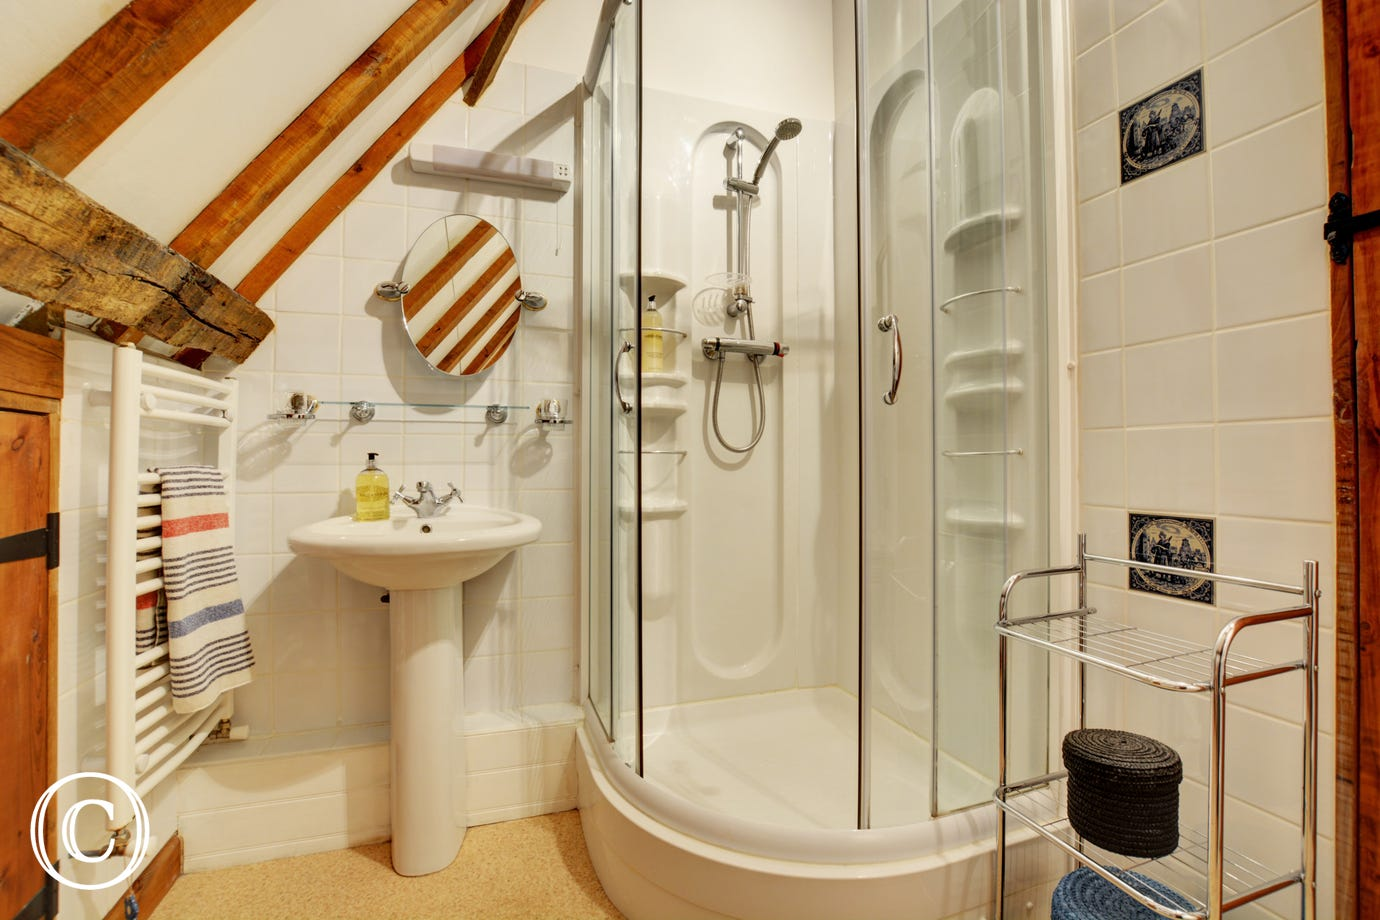 The bathroom also benefits from a separate shower cubicle